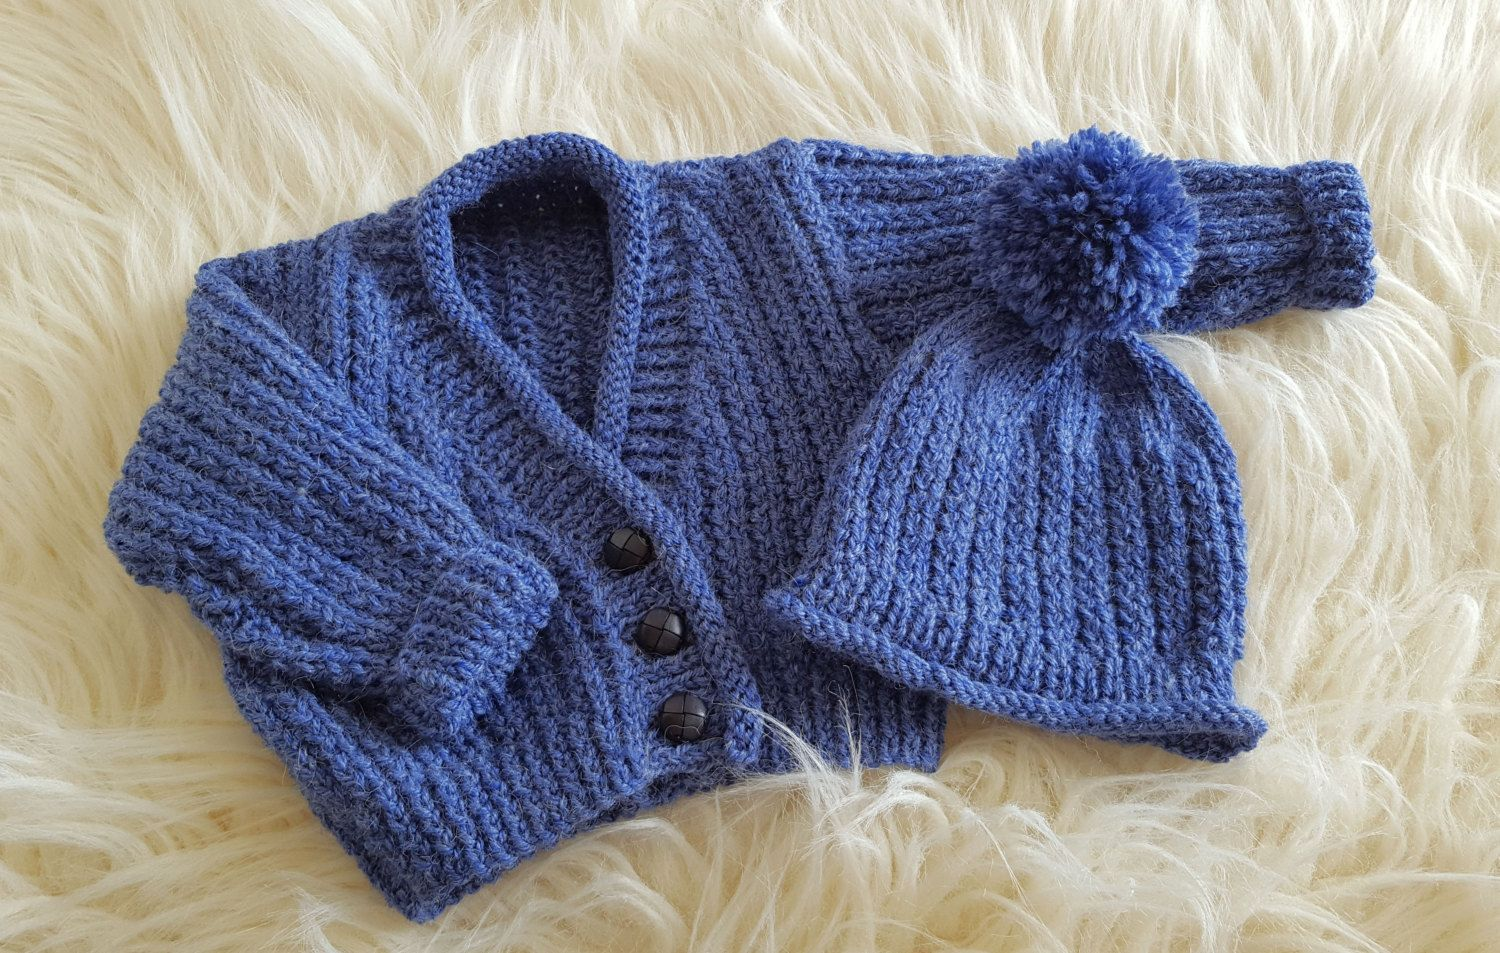 A Baby Knitting Pattern Boys Sweater Set - Instant ...